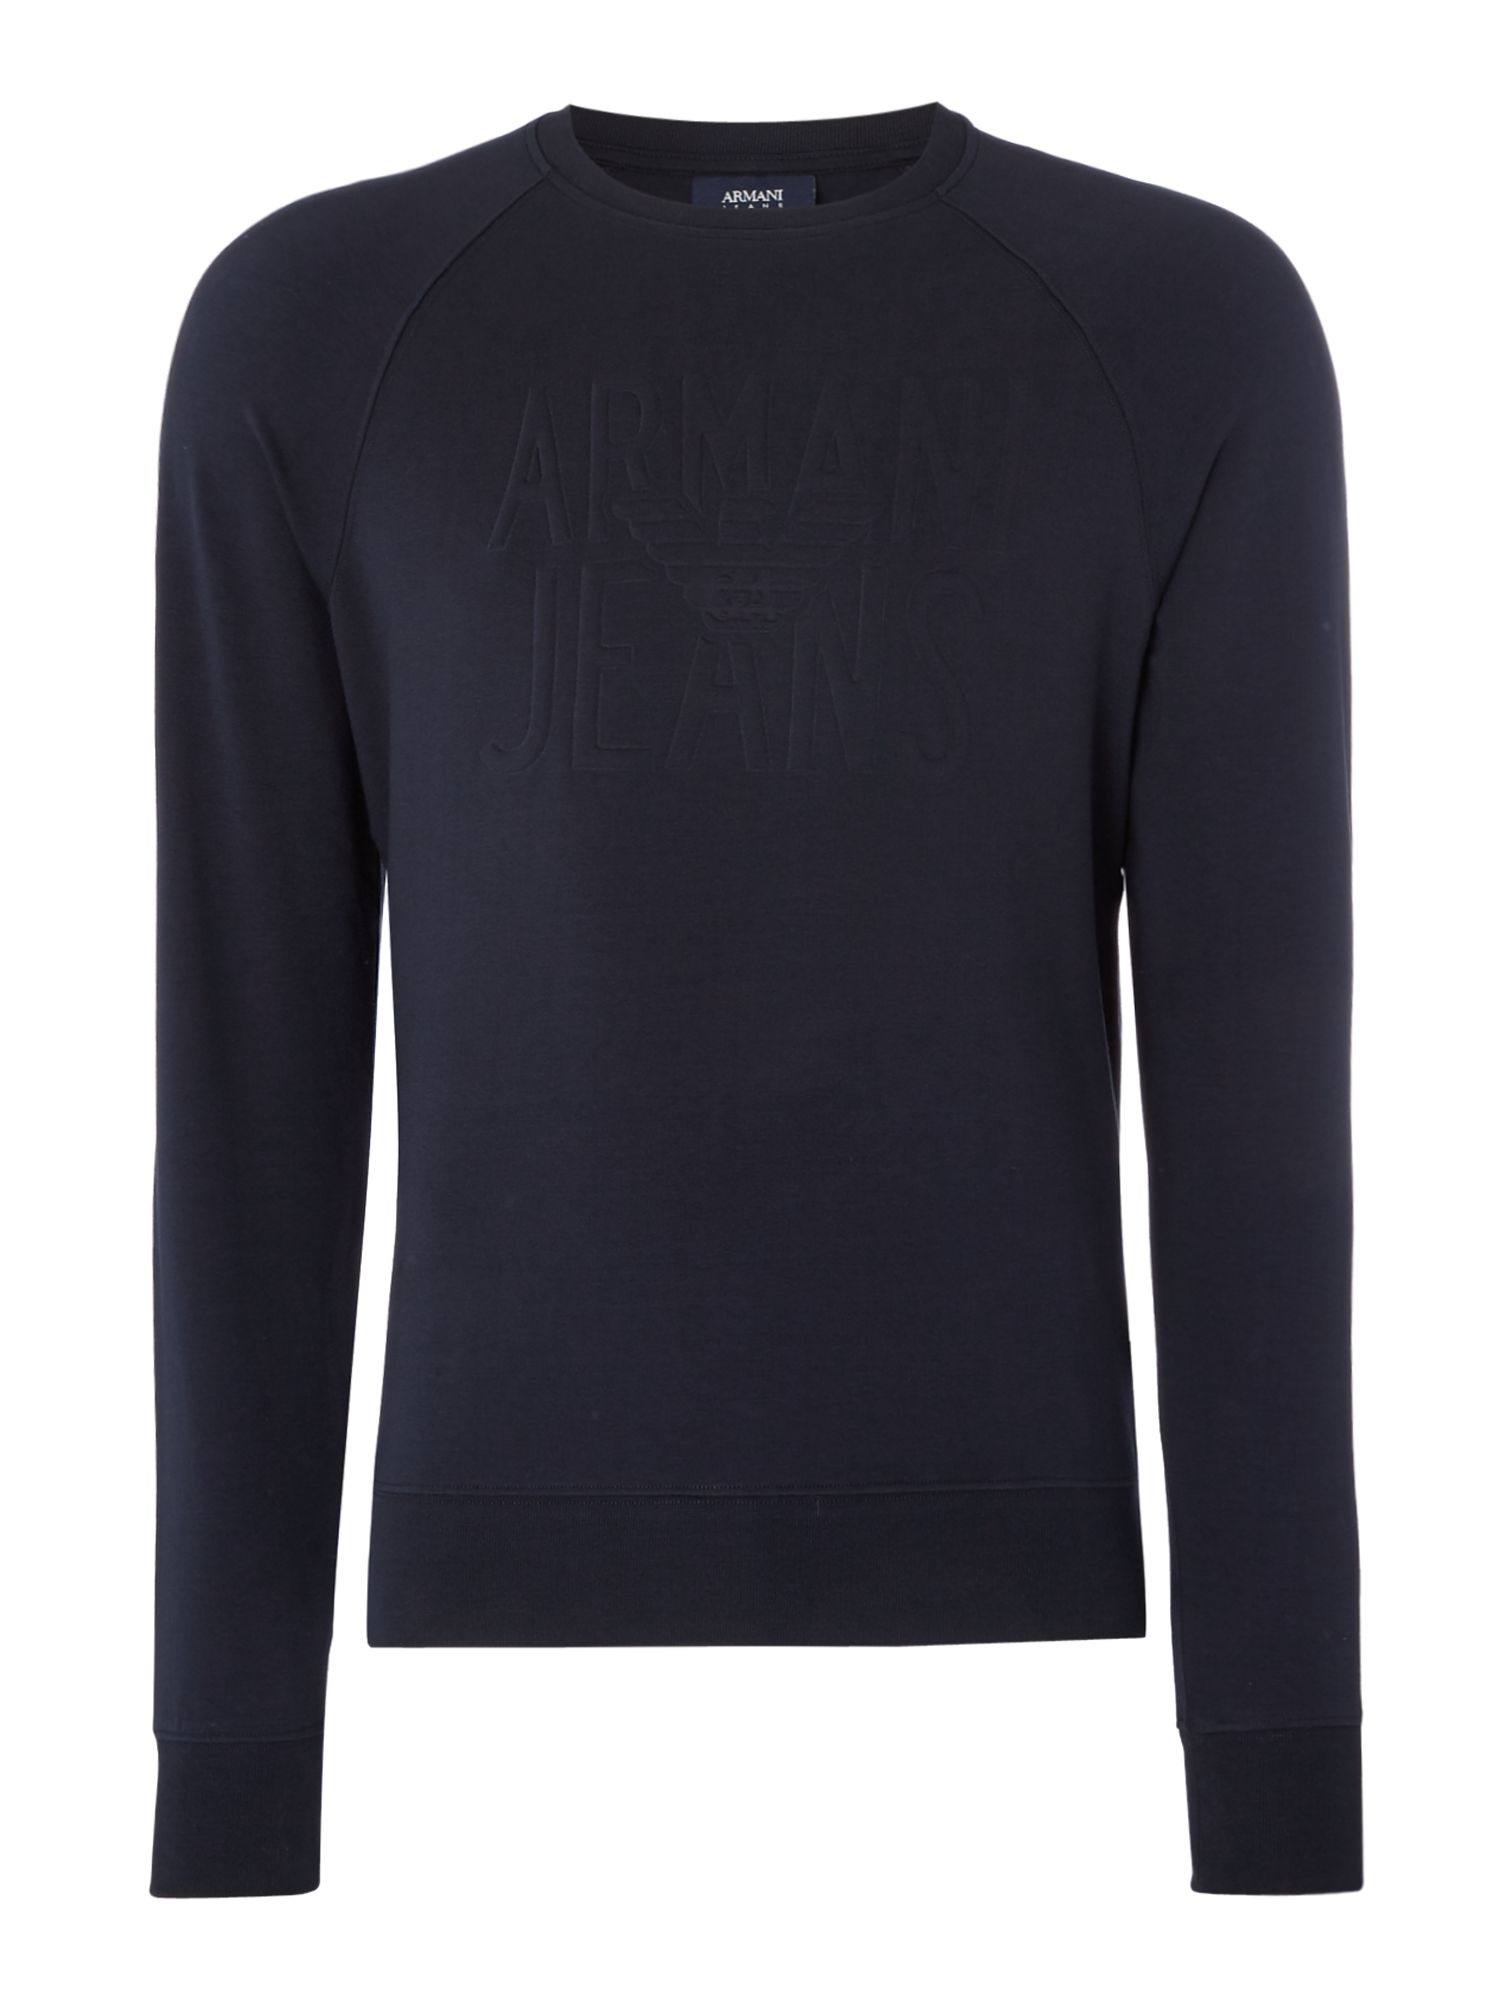 Men's Armani Jeans Embossed logo crew neck sweatshirt, Blue